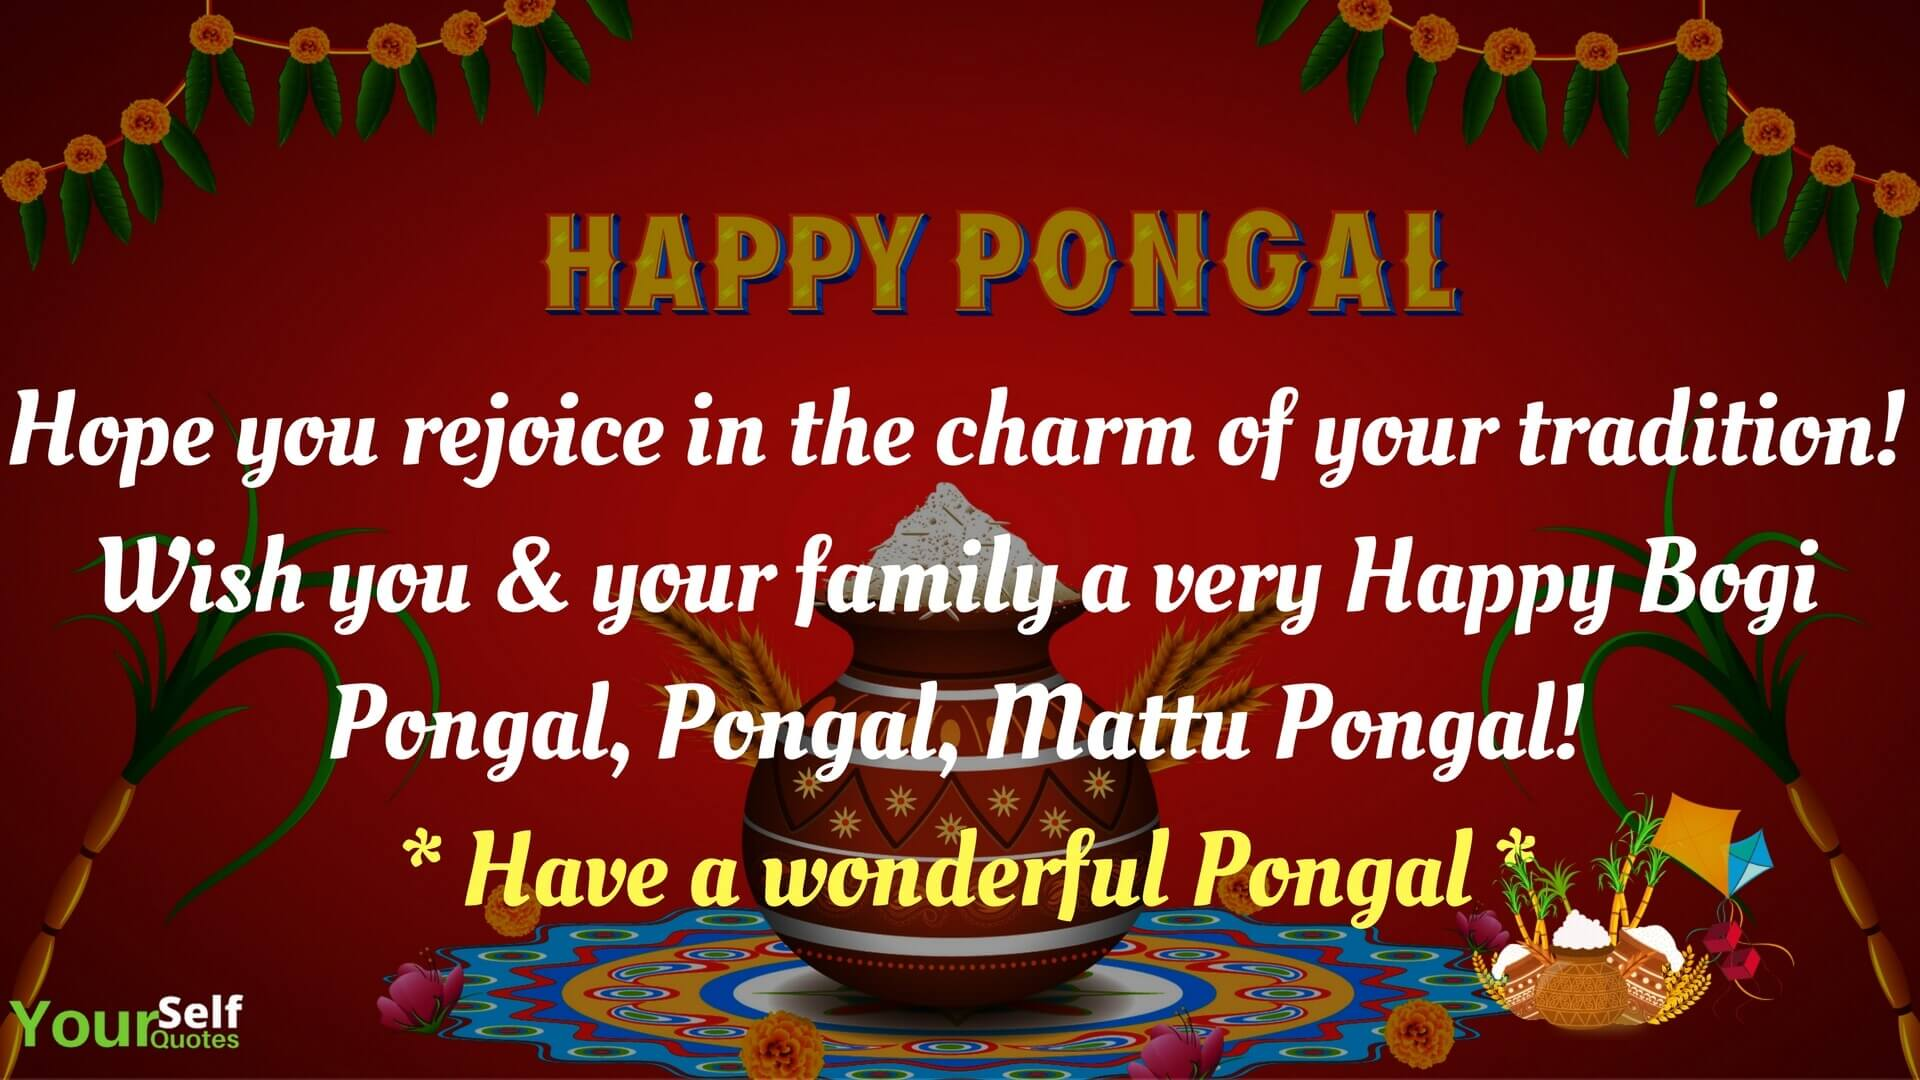 Happy pongal festival wishes 2018 messages greetings images mattu happy pongal festival wishes m4hsunfo Gallery